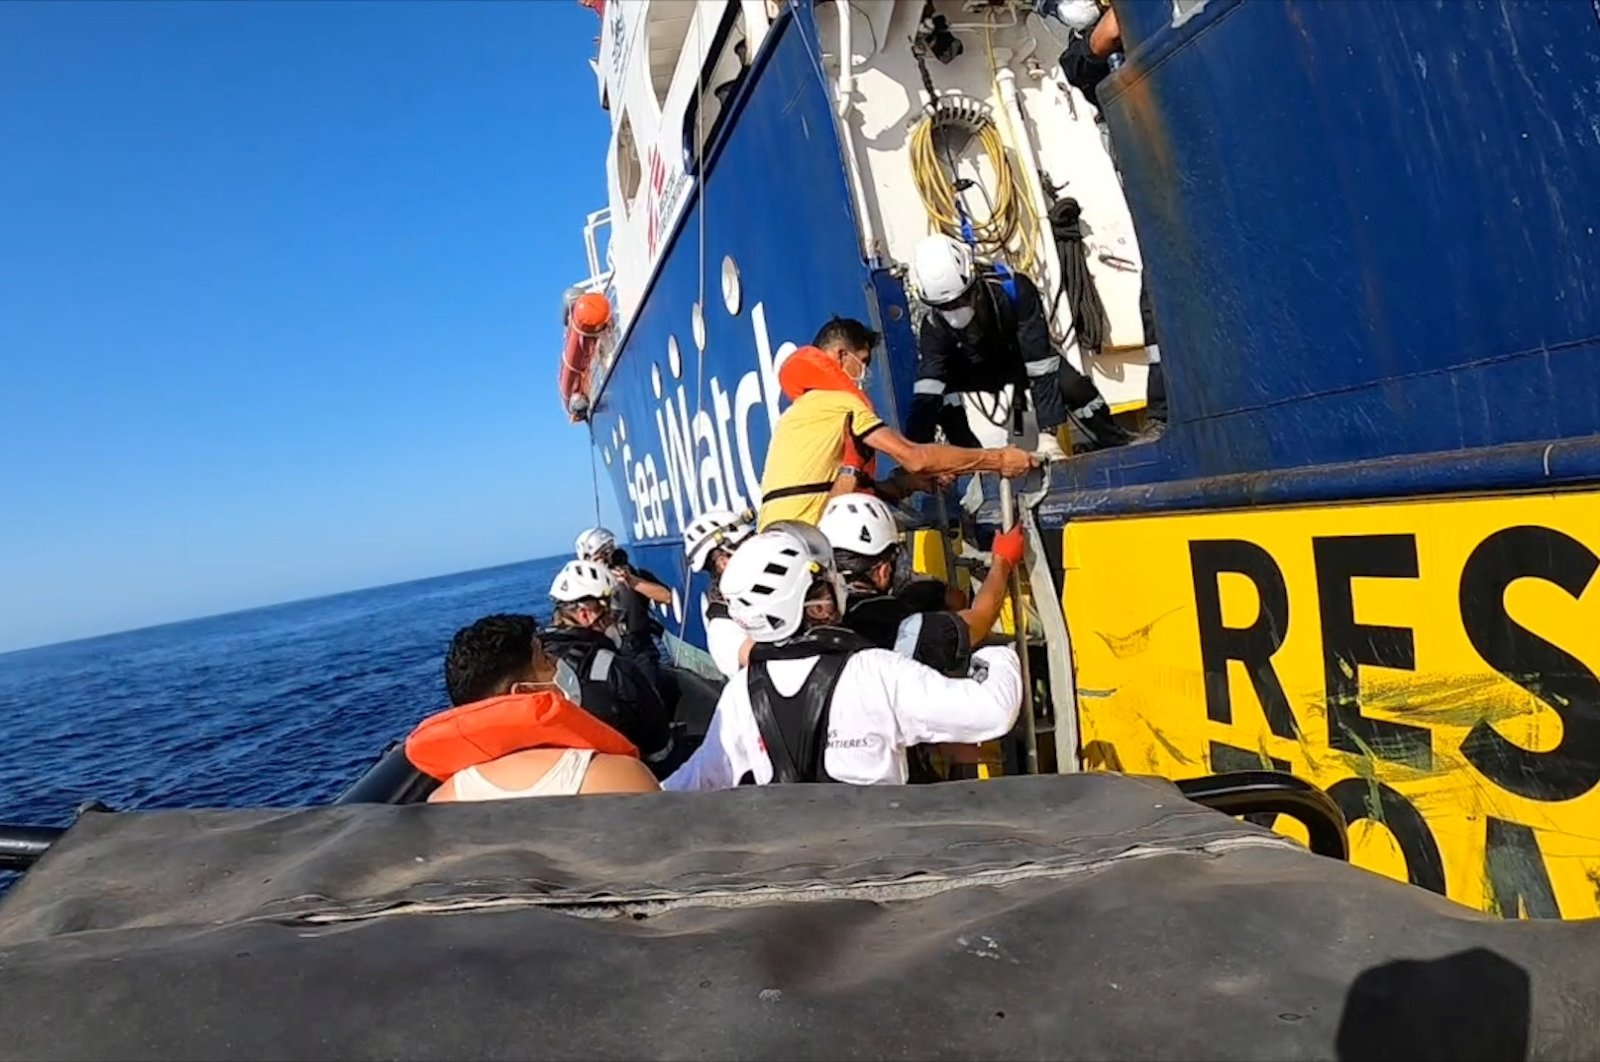 A rescued migrant enters the Sea-Watch 4 ship helped by a rescue team, at sea off the coast of Libya, Aug. 22, 2020, in this still image taken from the video. (Sea-Watch handout via Reuters Photo)